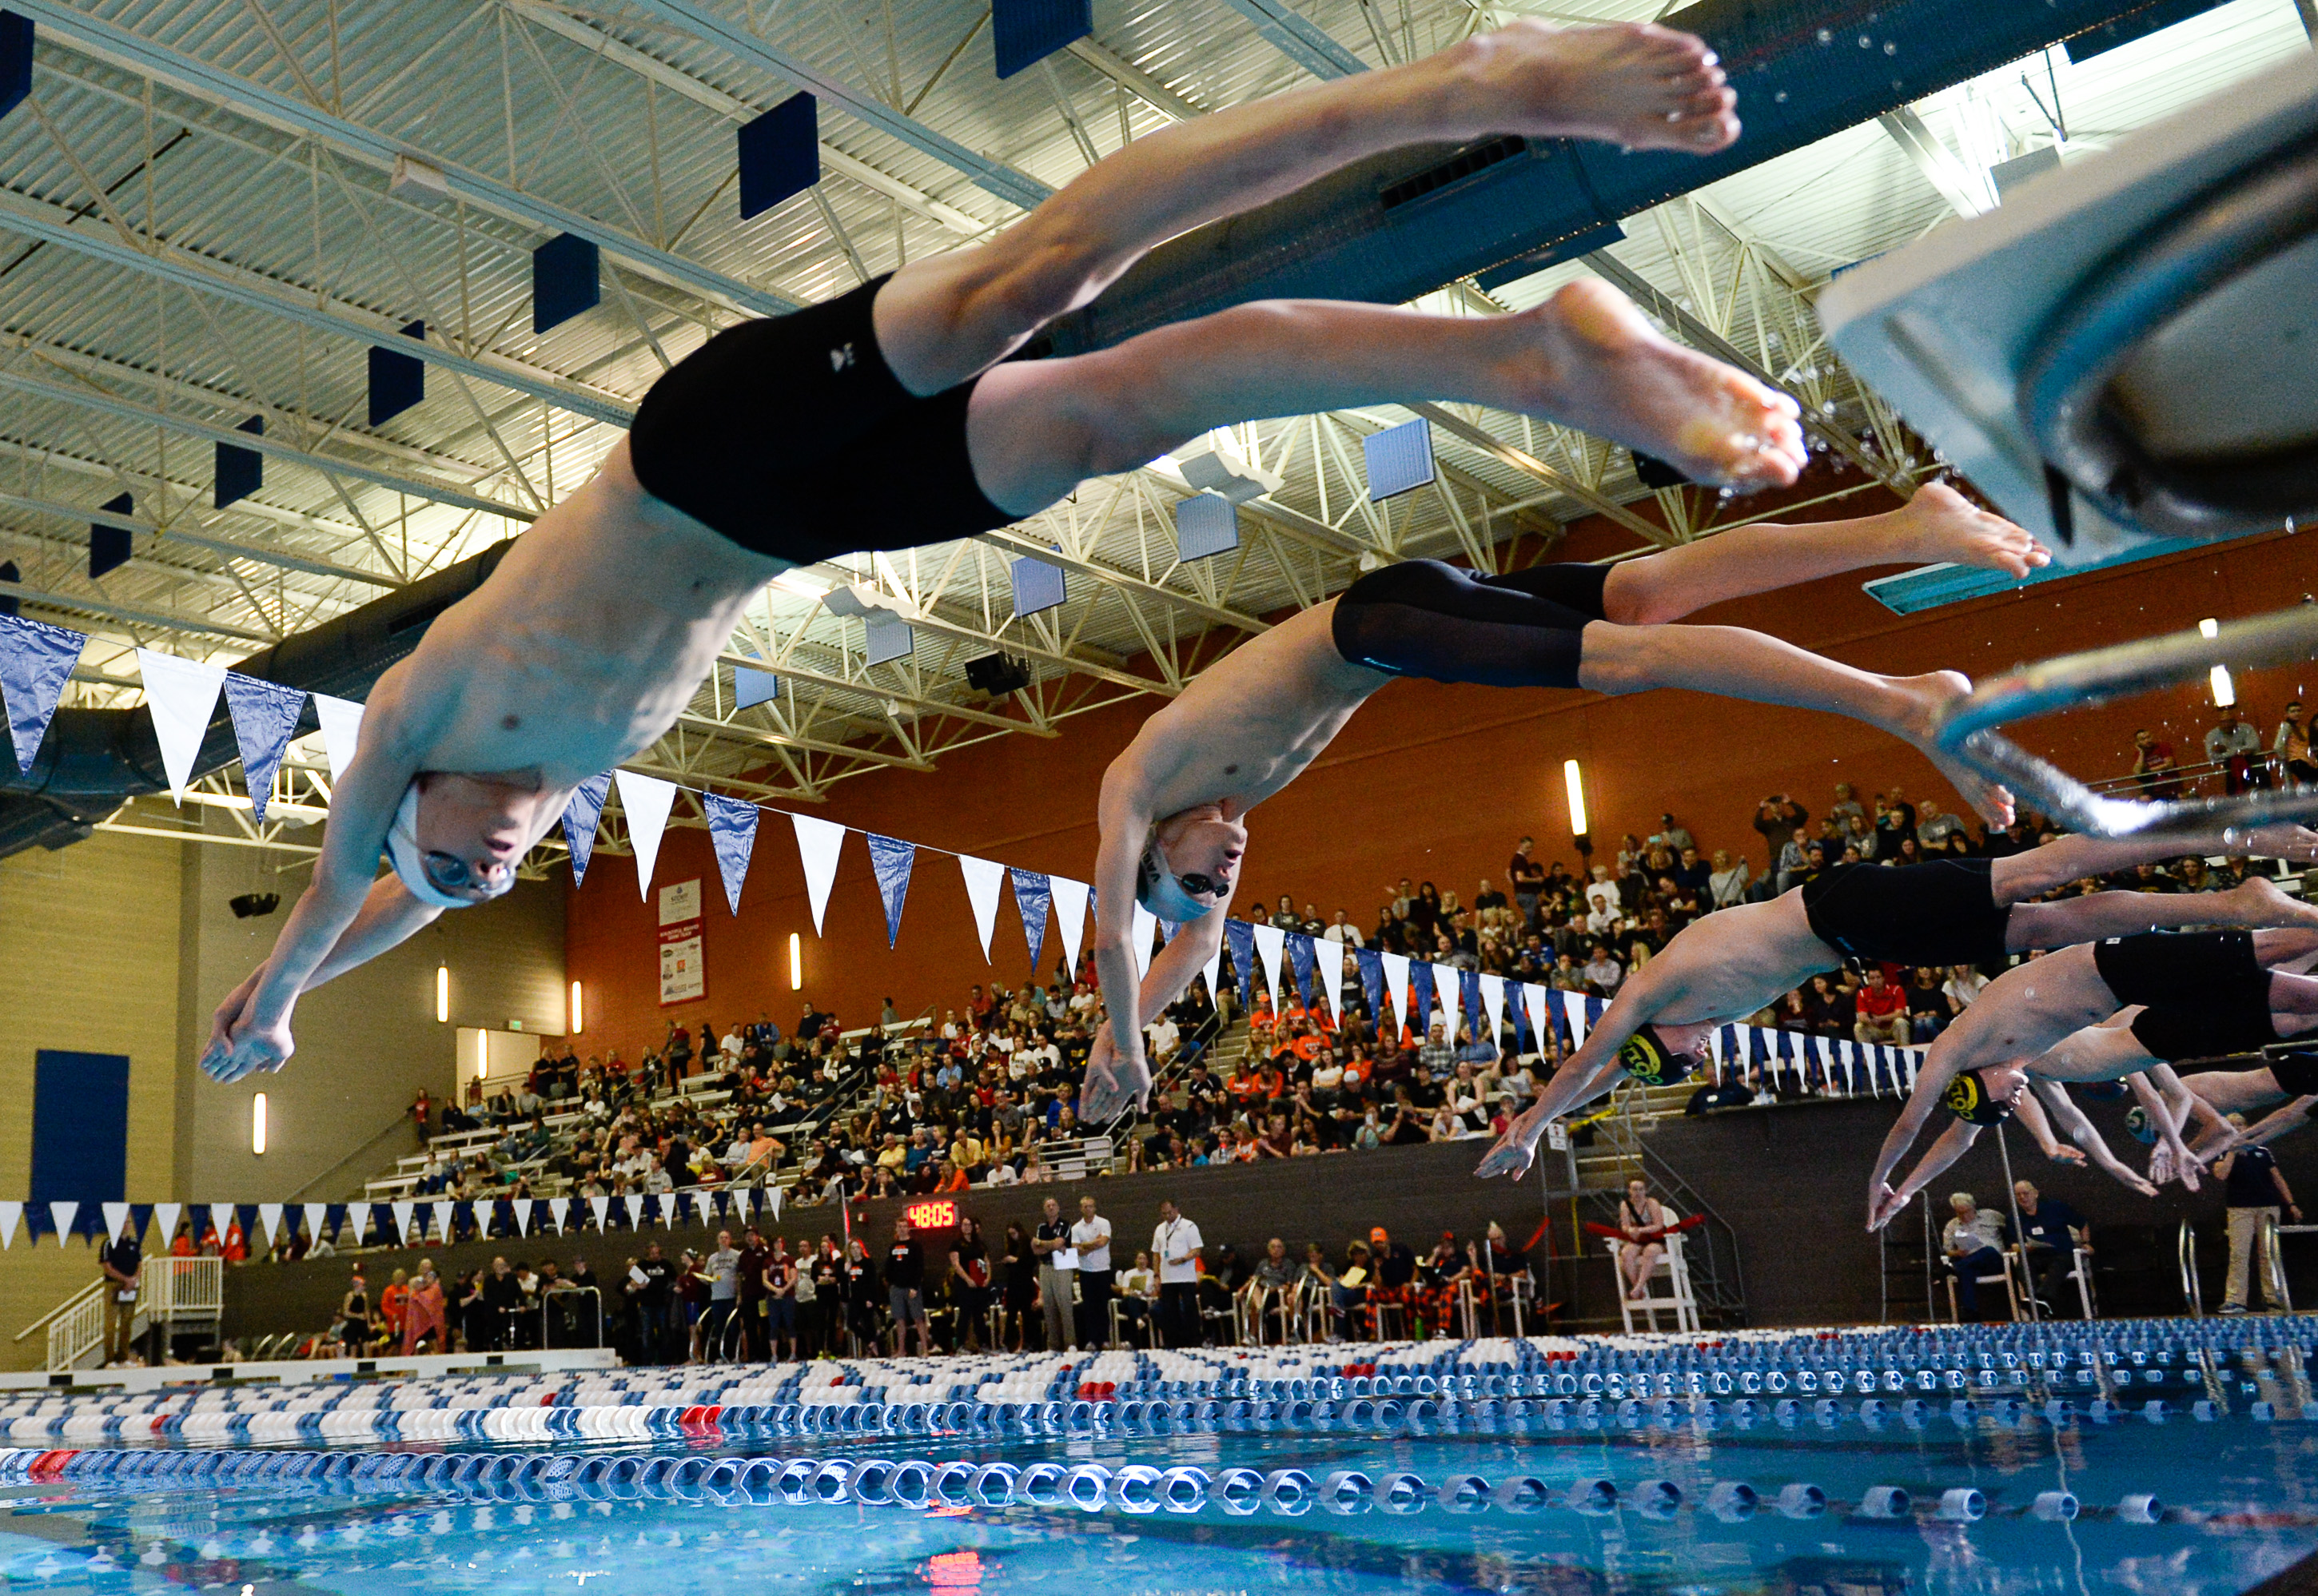 (Francisco Kjolseth  |  The Salt Lake Tribune)  Men compete in the 50 Yard Free at the high school swimming 5A State Championships in Bountiful, Friday February 9, 2018.